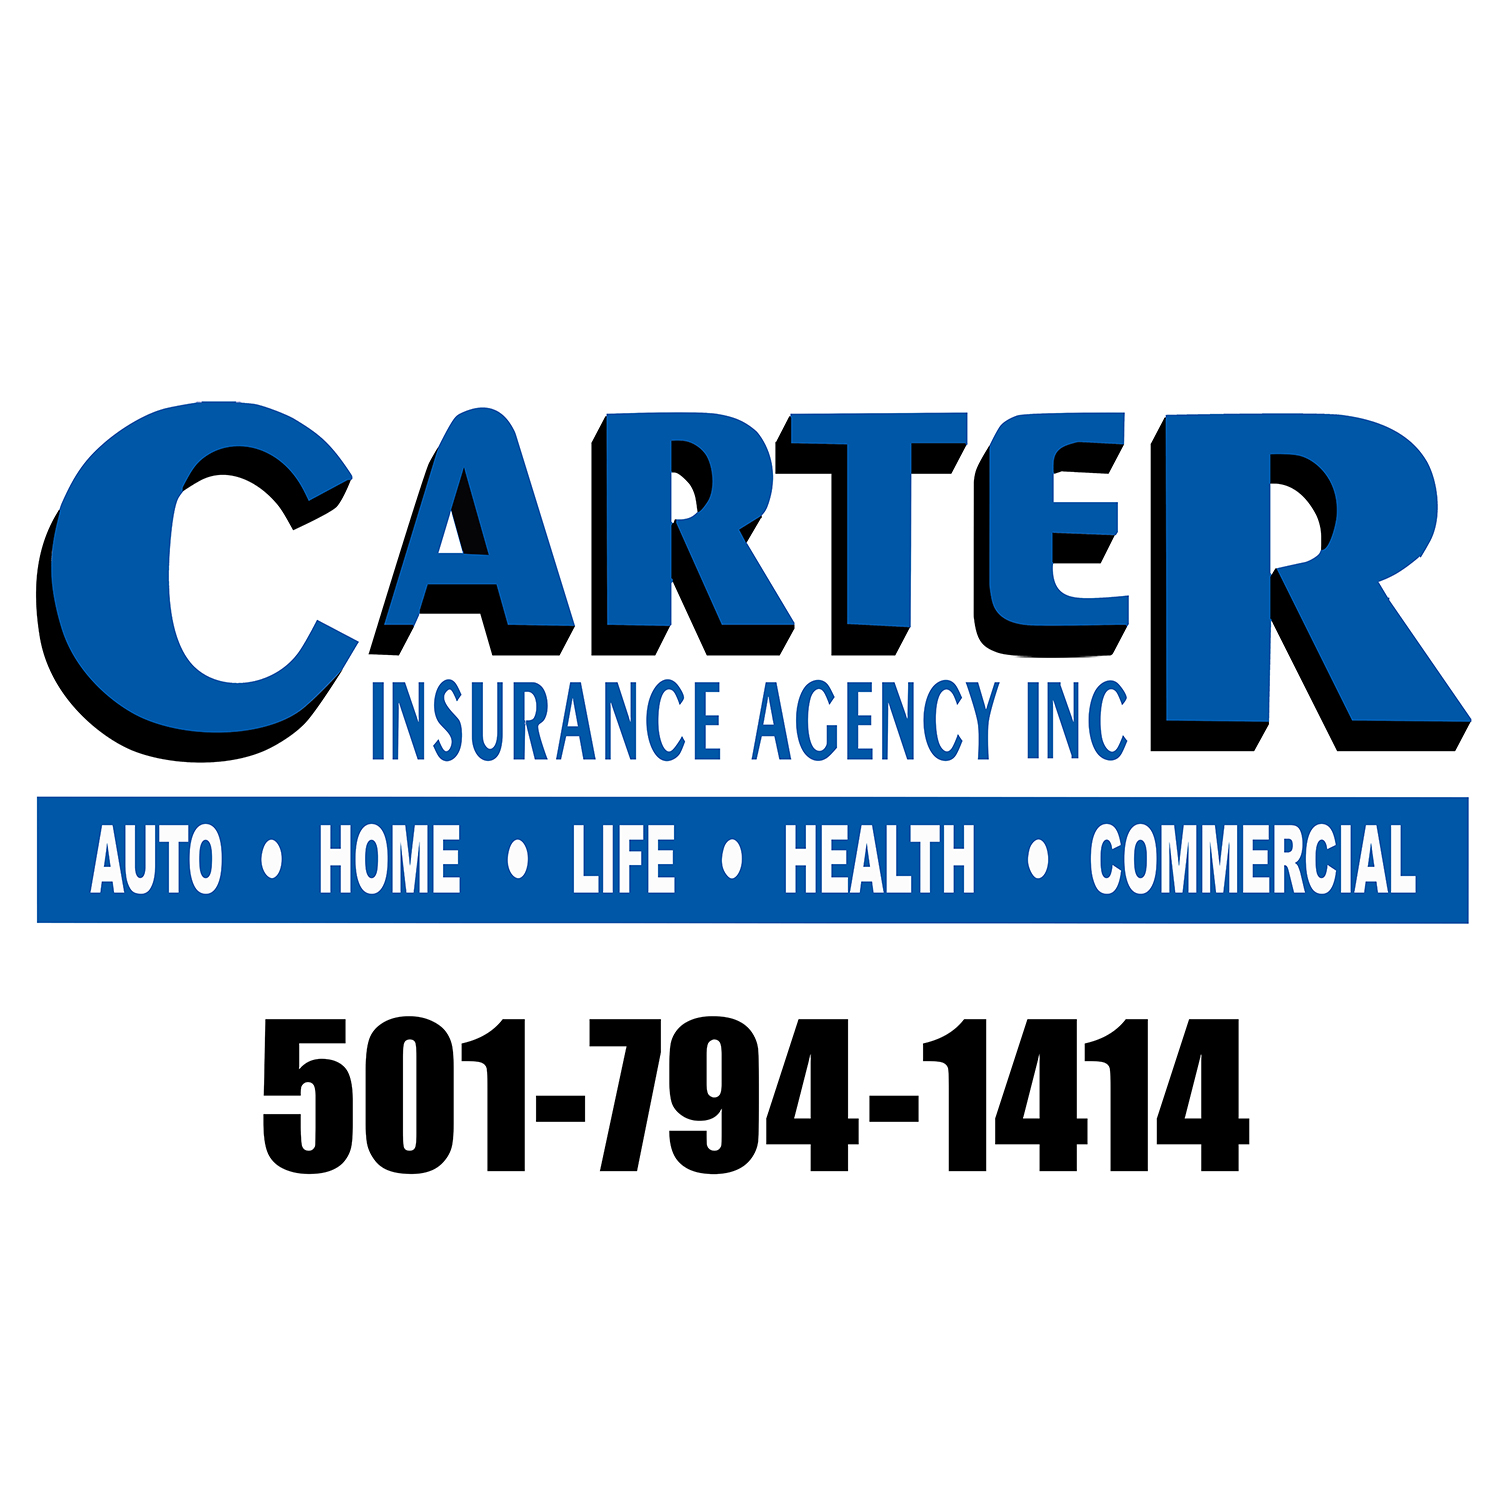 Carter Insurance Agency Inc.